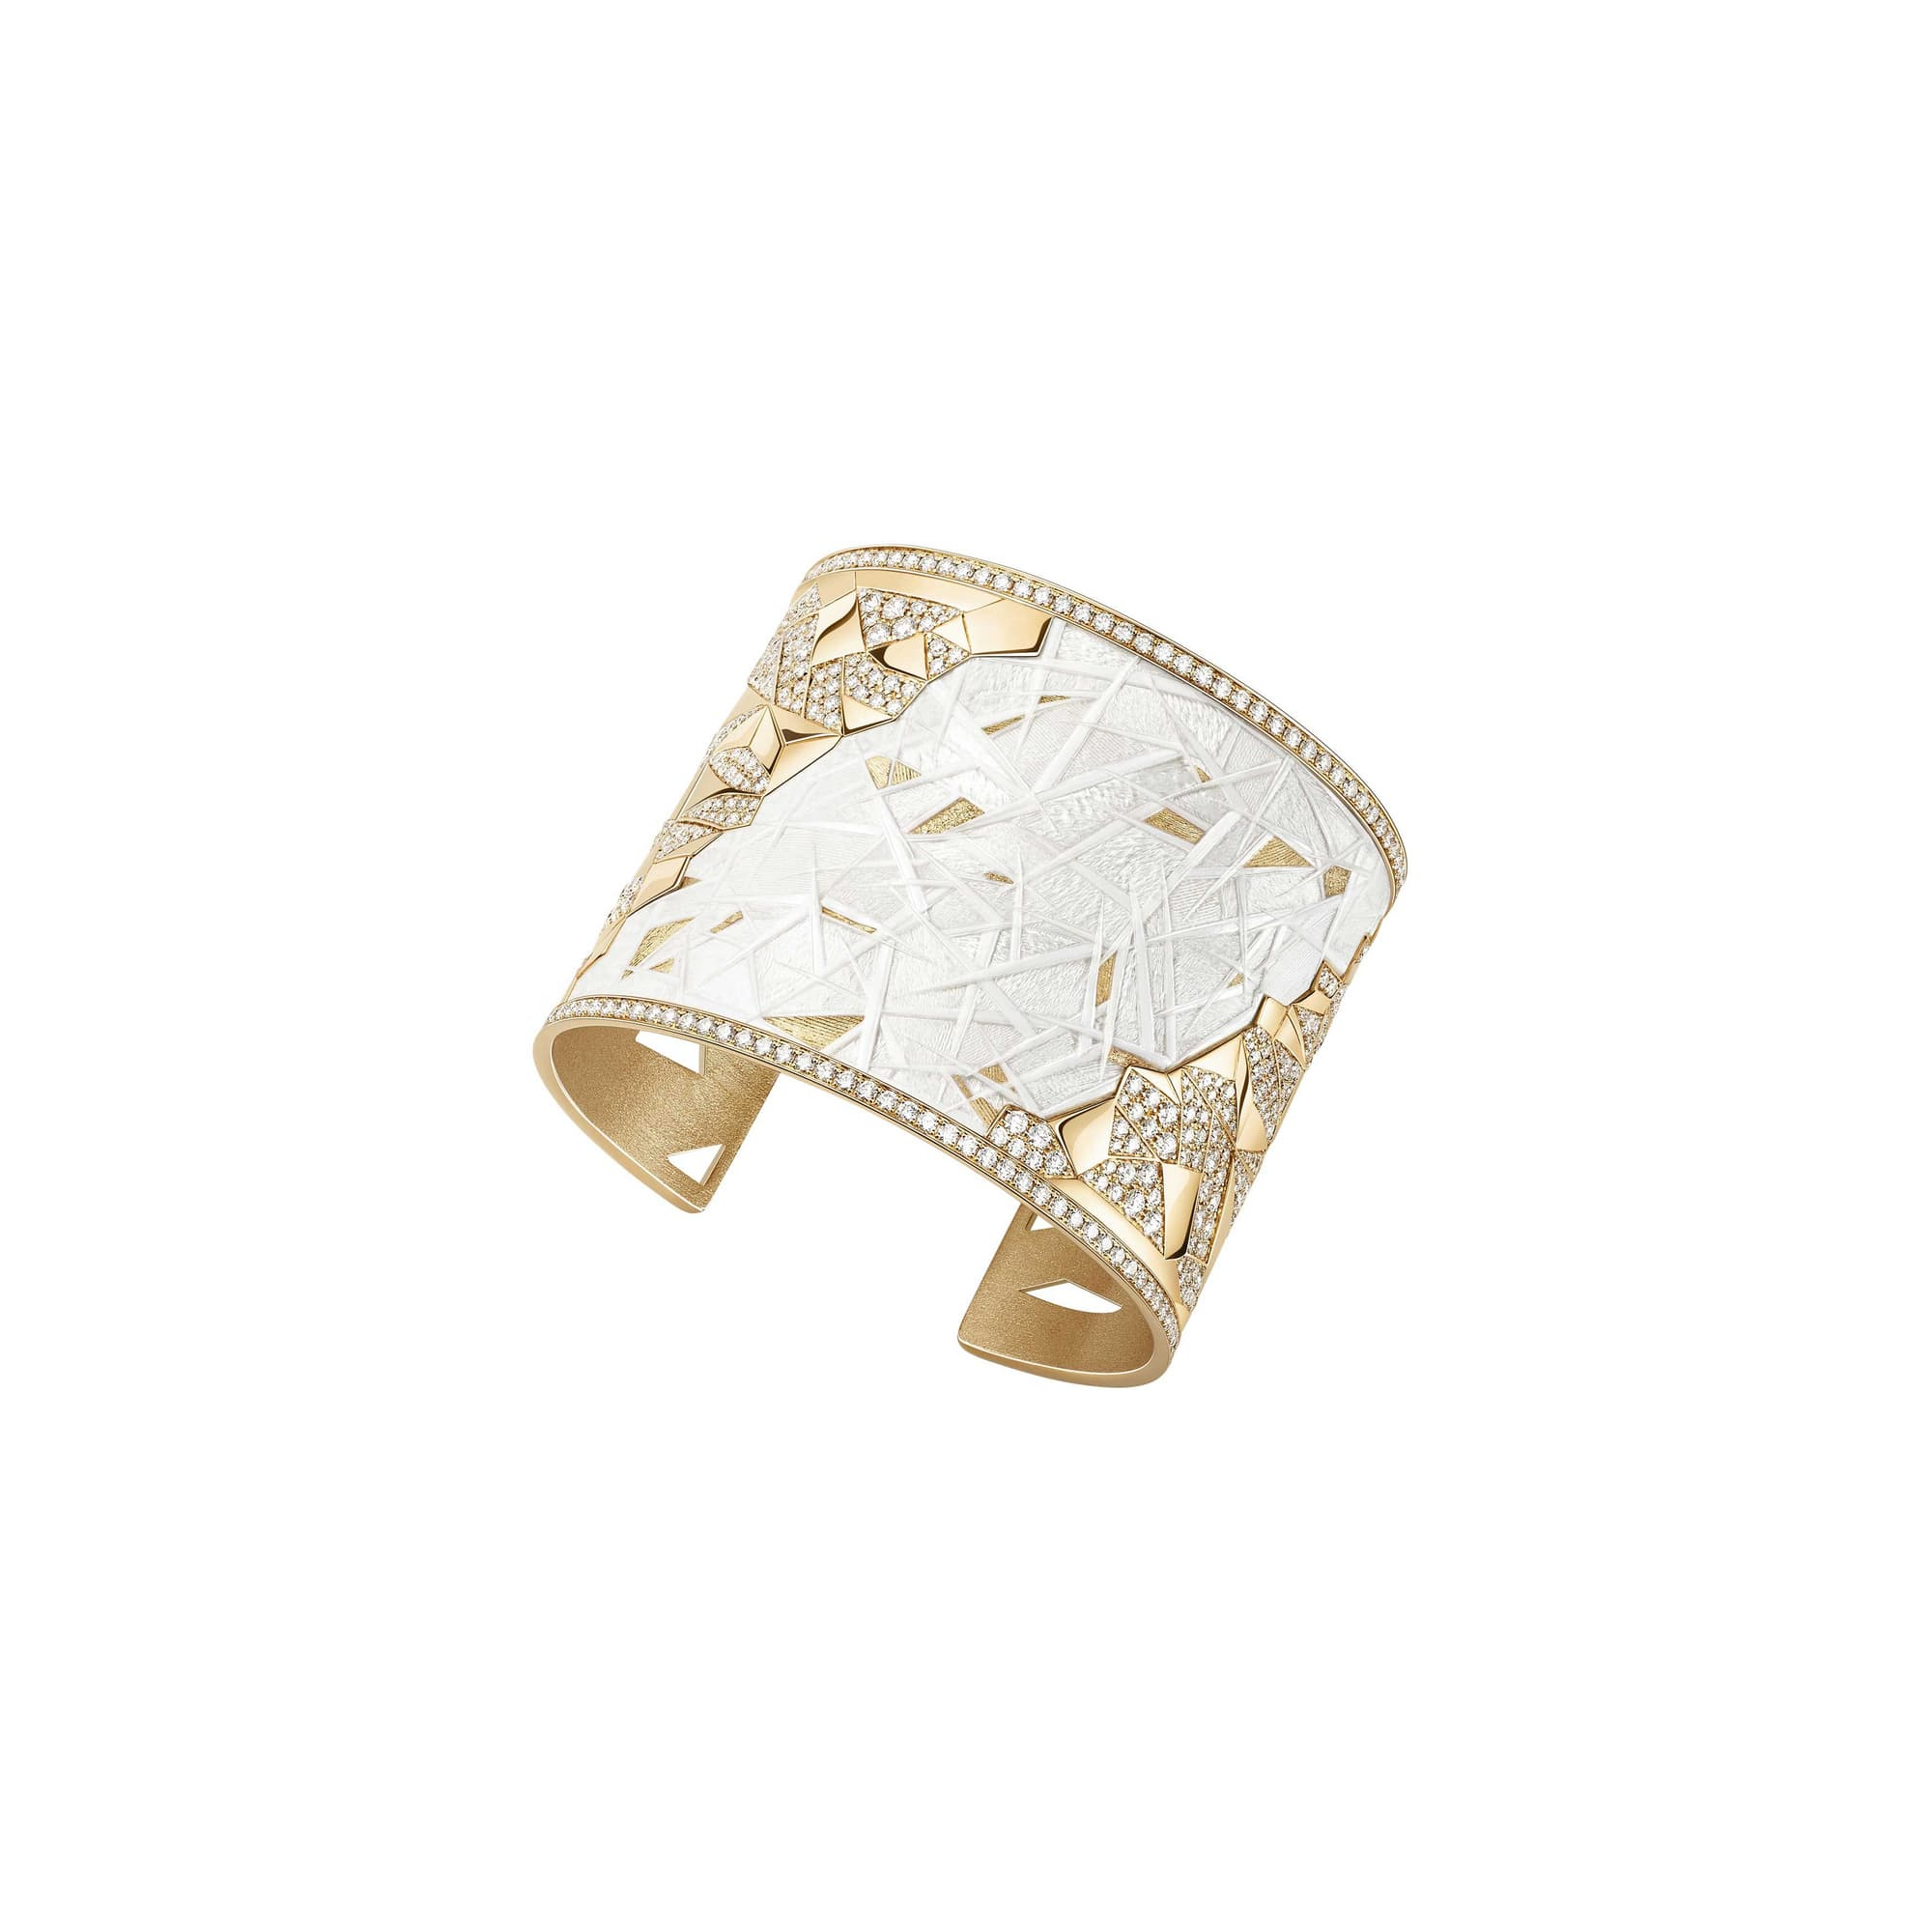 yellow gold high jewellery cuff bracelet